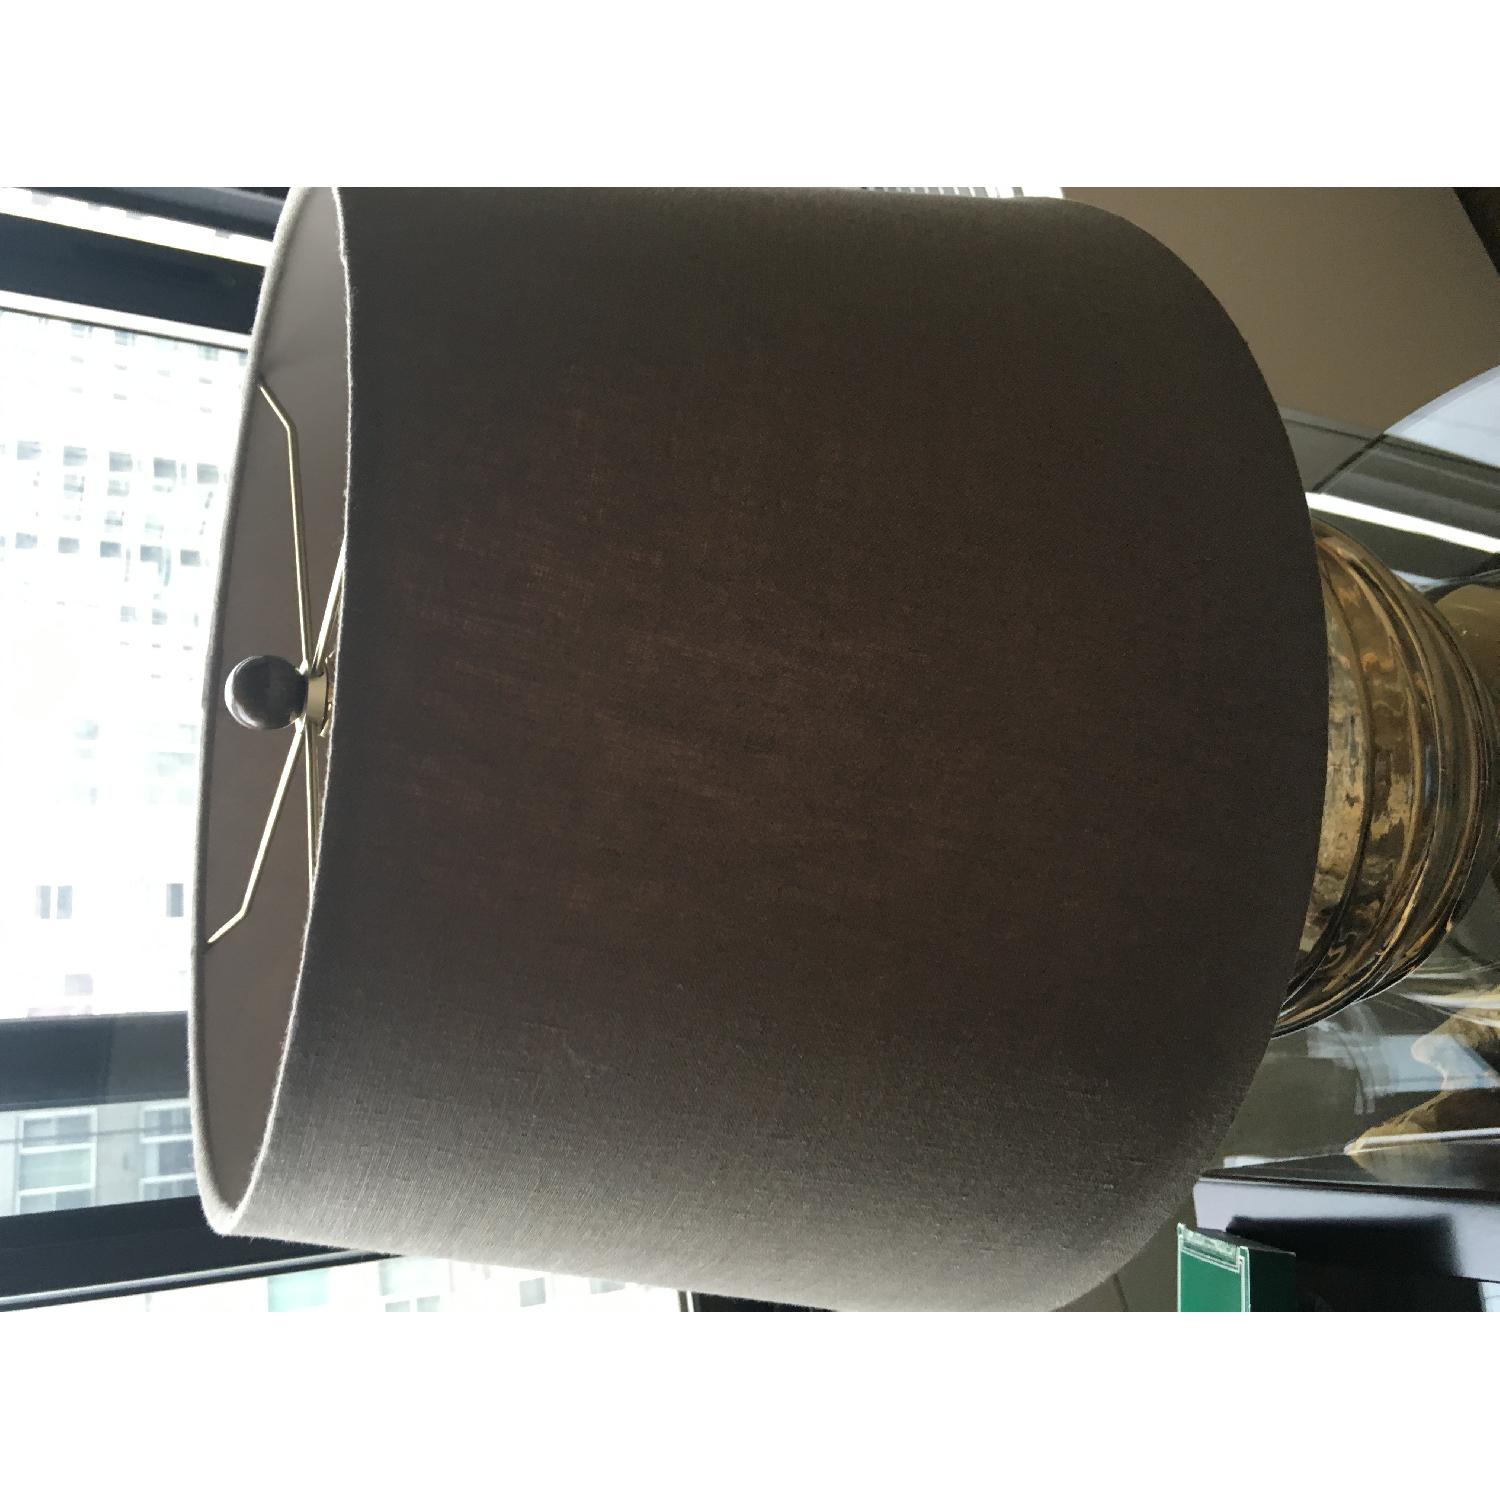 Crate & Barrel Bronze Glass Table Lamp w/ Neutral/Brown Shade - image-2